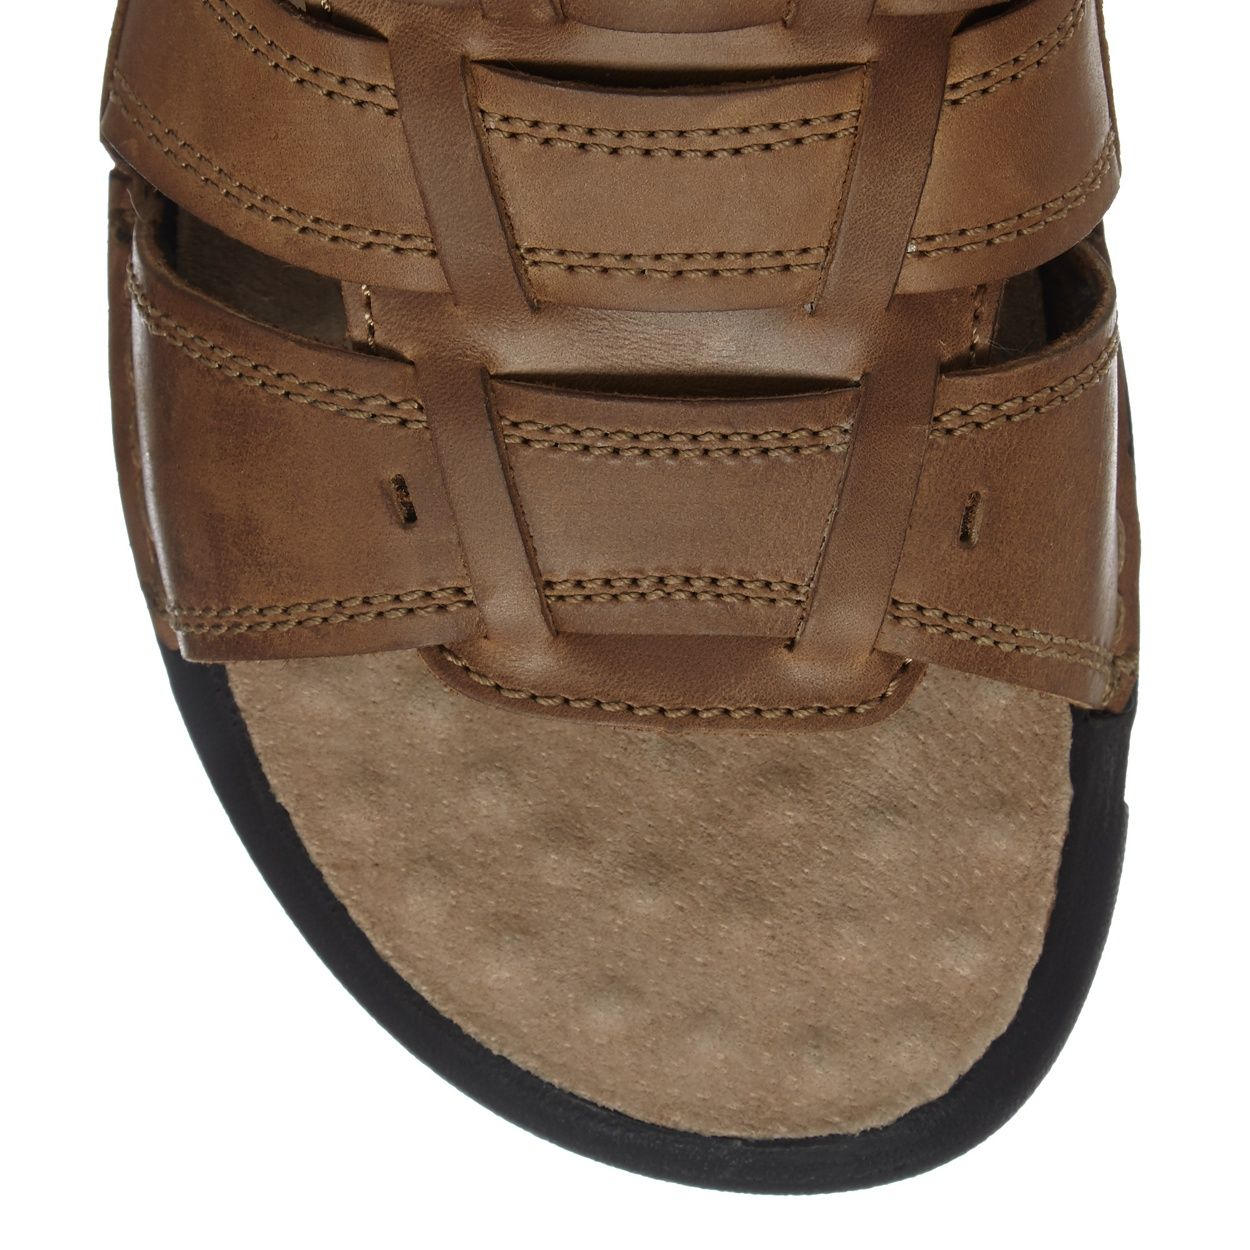 These Tan Sandals From Hush Puppies Provide Everyday Comfort